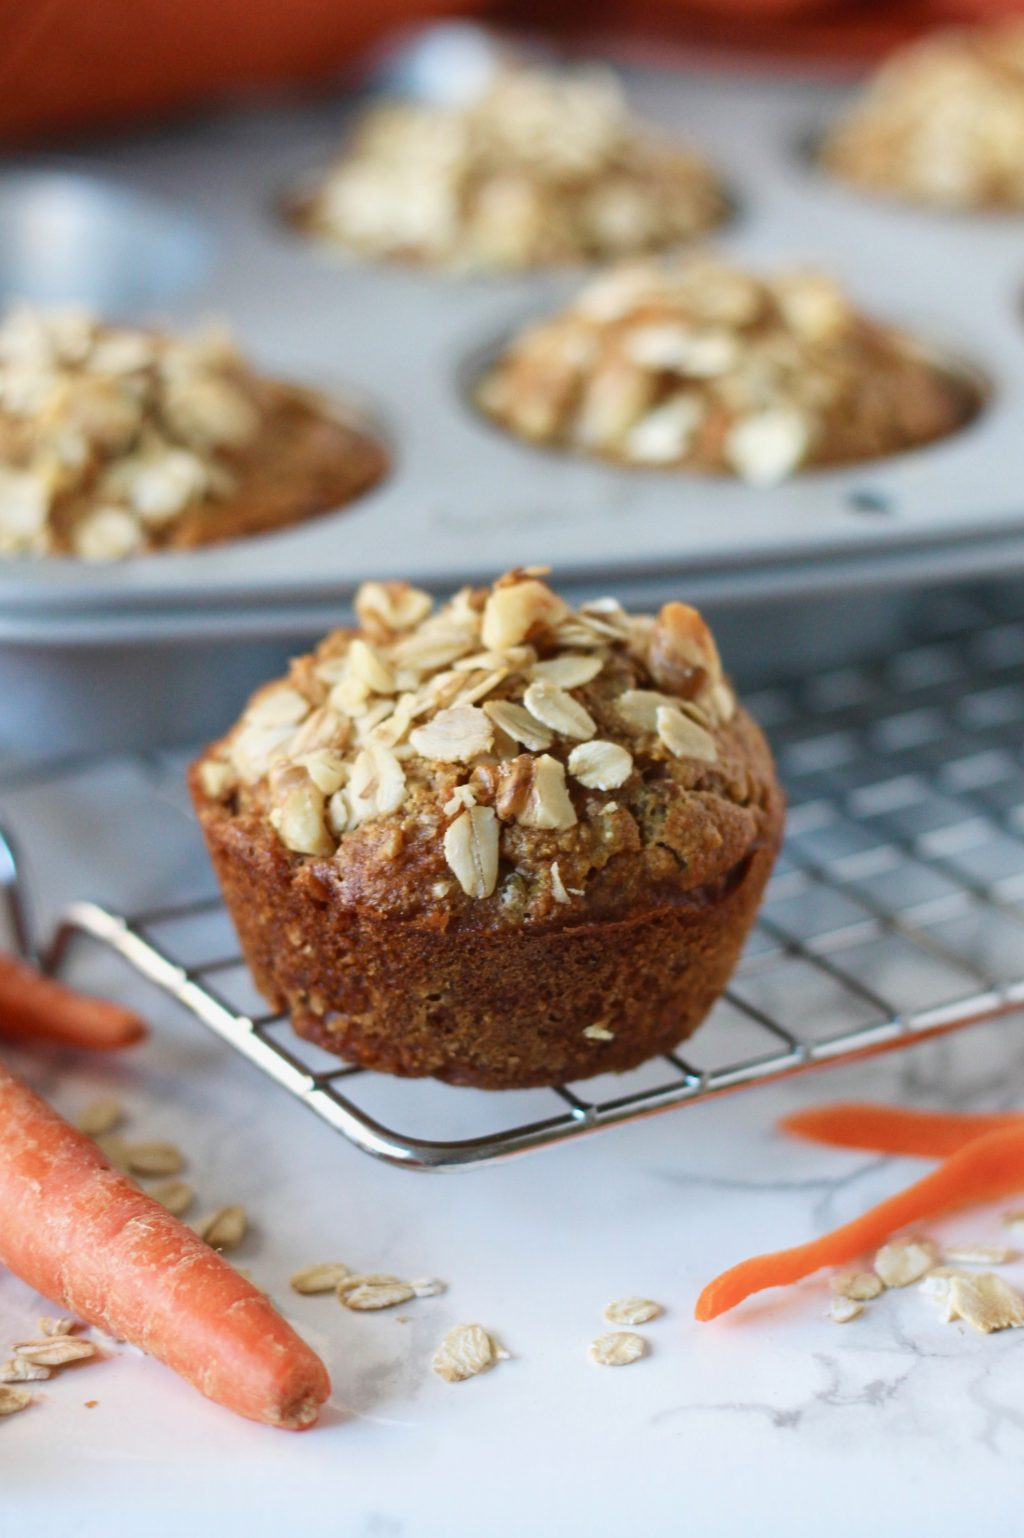 Whole Wheat Carrot Muffins with Walnuts | www.littlechefbigappetite.com 5